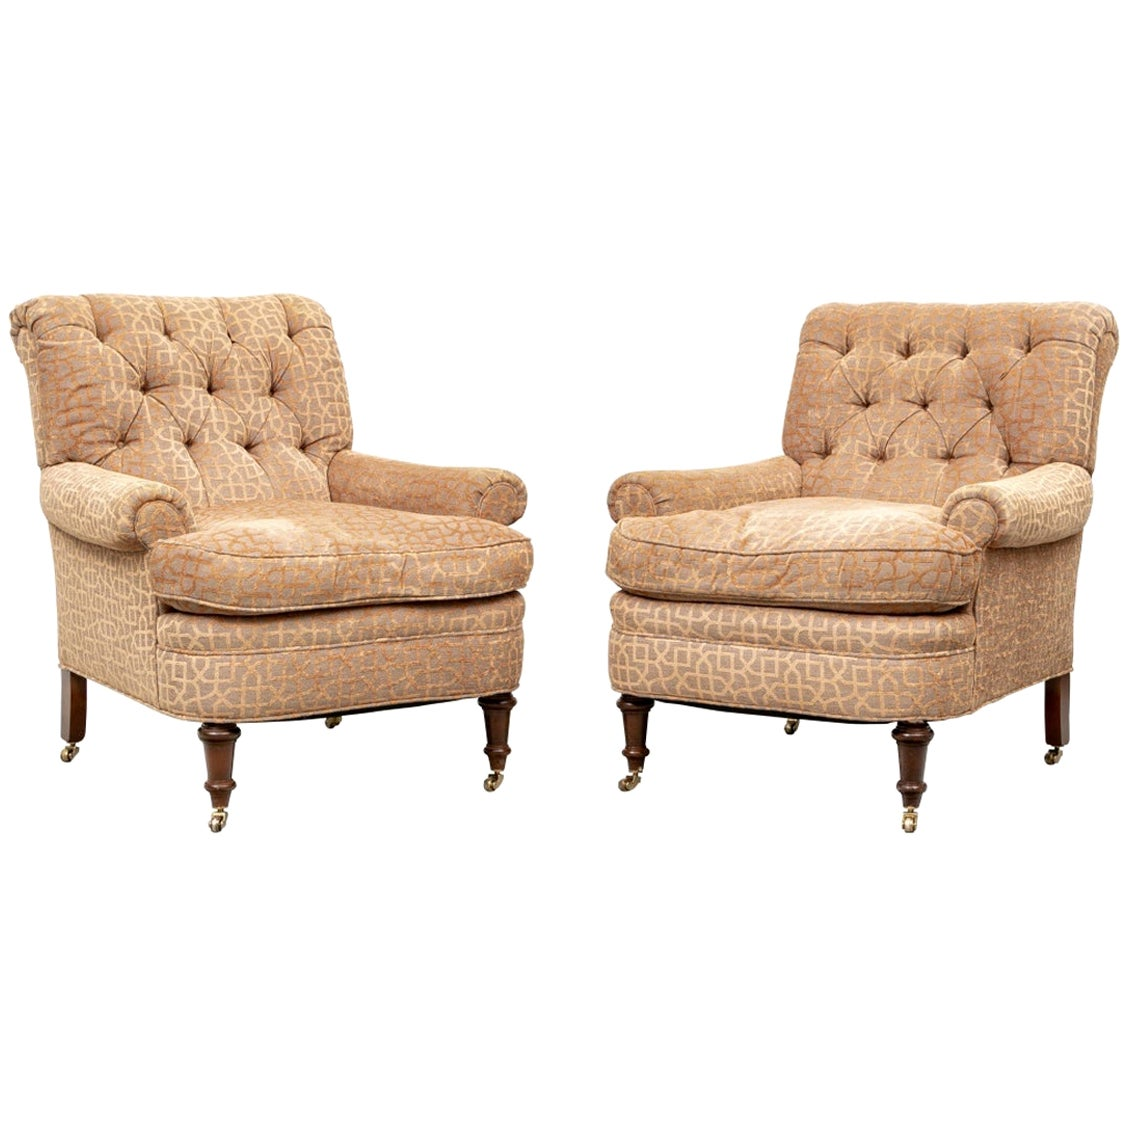 Pair of Quality George Smith Style Tuft-Back Club Chairs